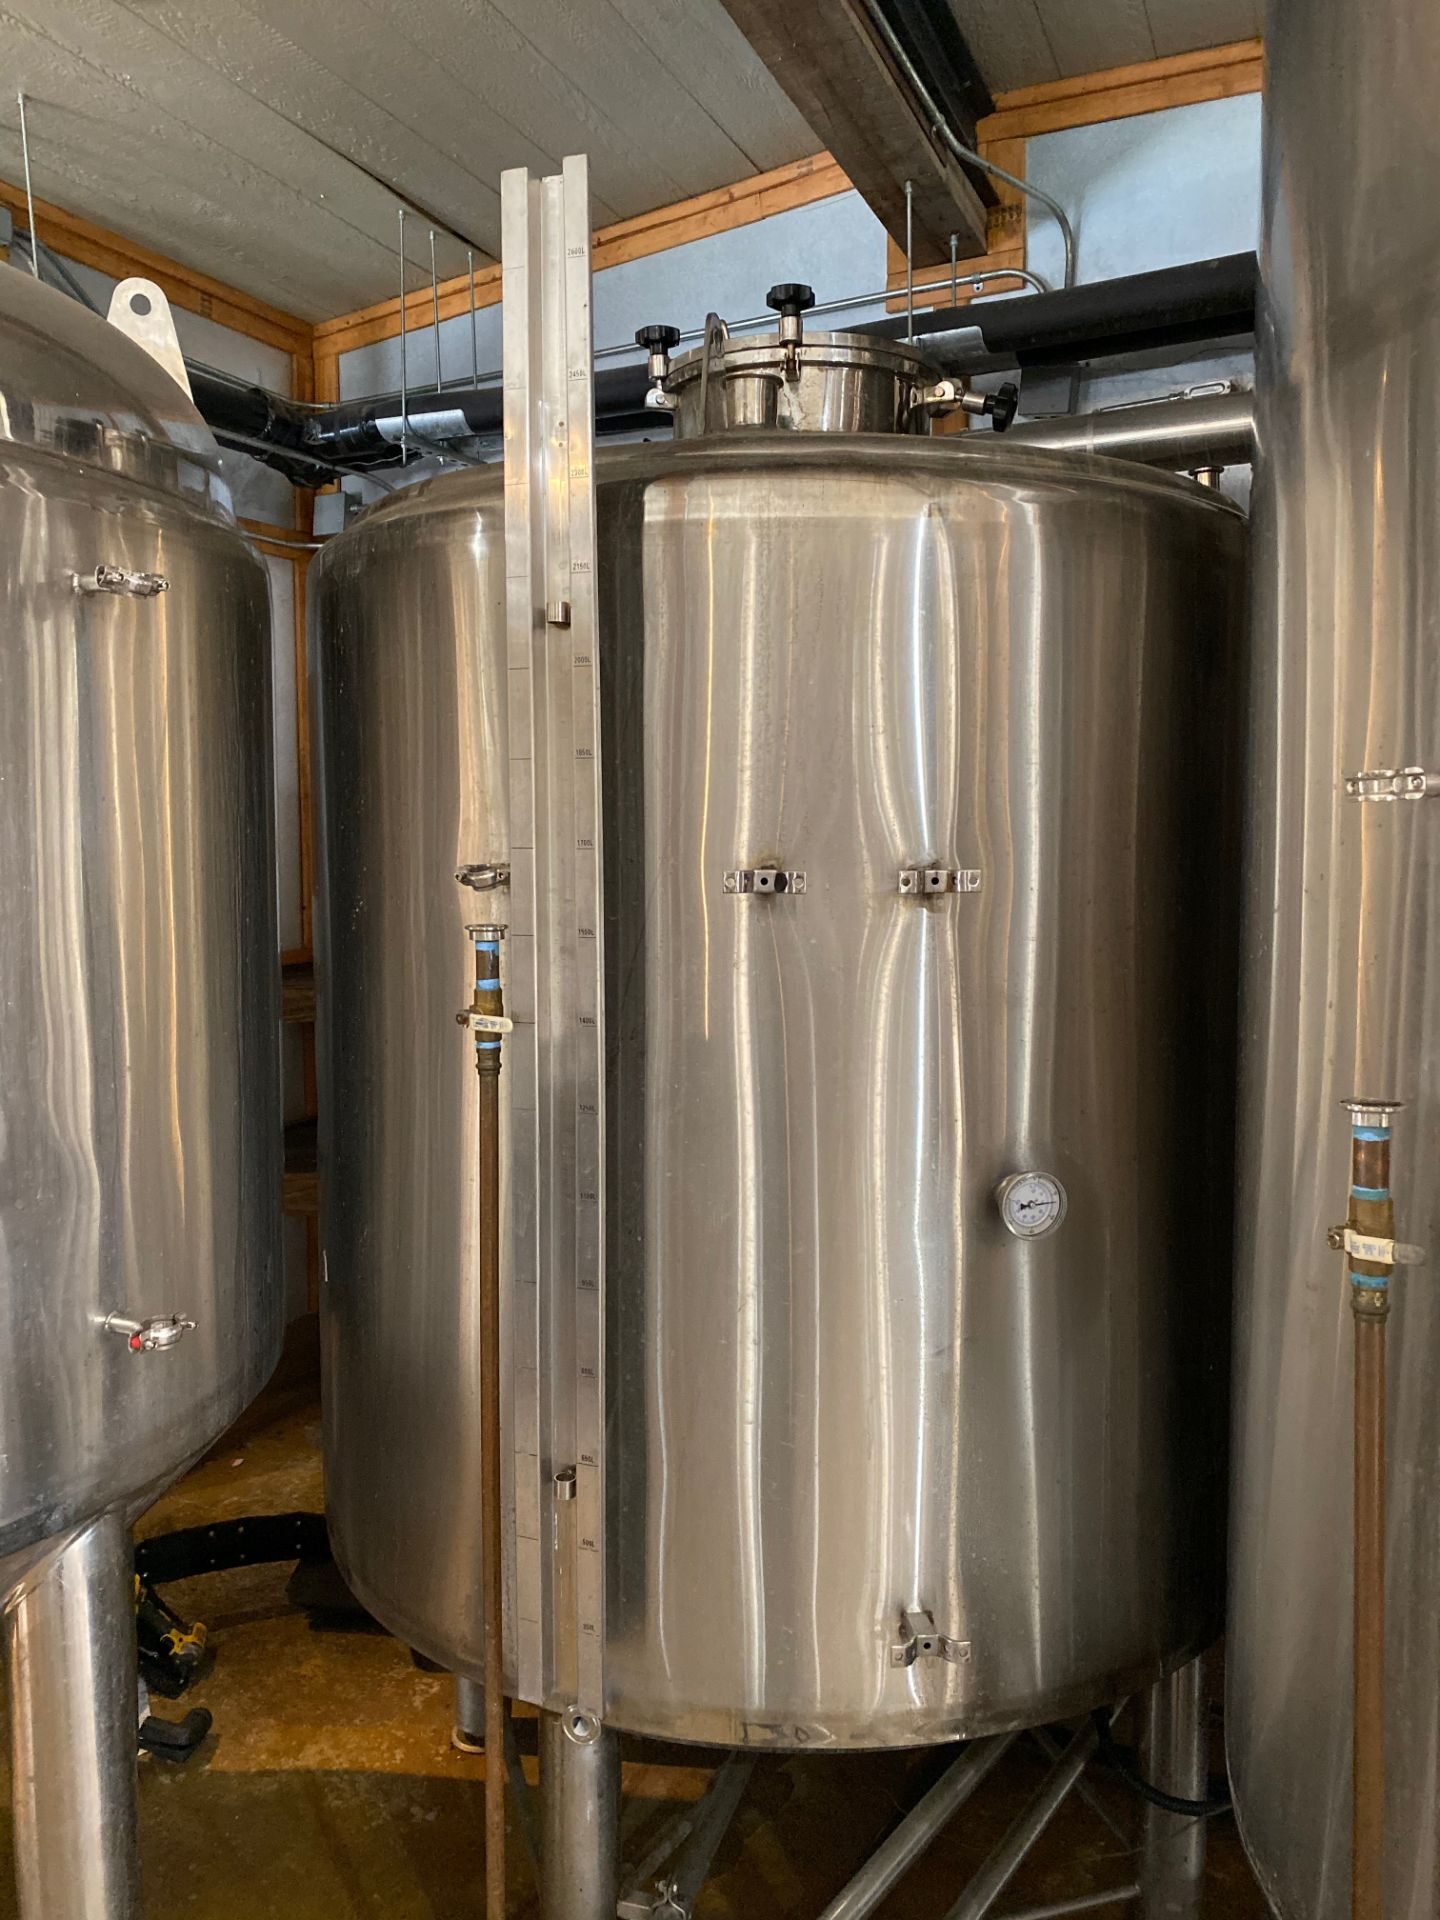 Lot 3 - 2014 Criveller Cold Liquor Tank, Jacketed | Sub to Bulk | Rig Fee: $500